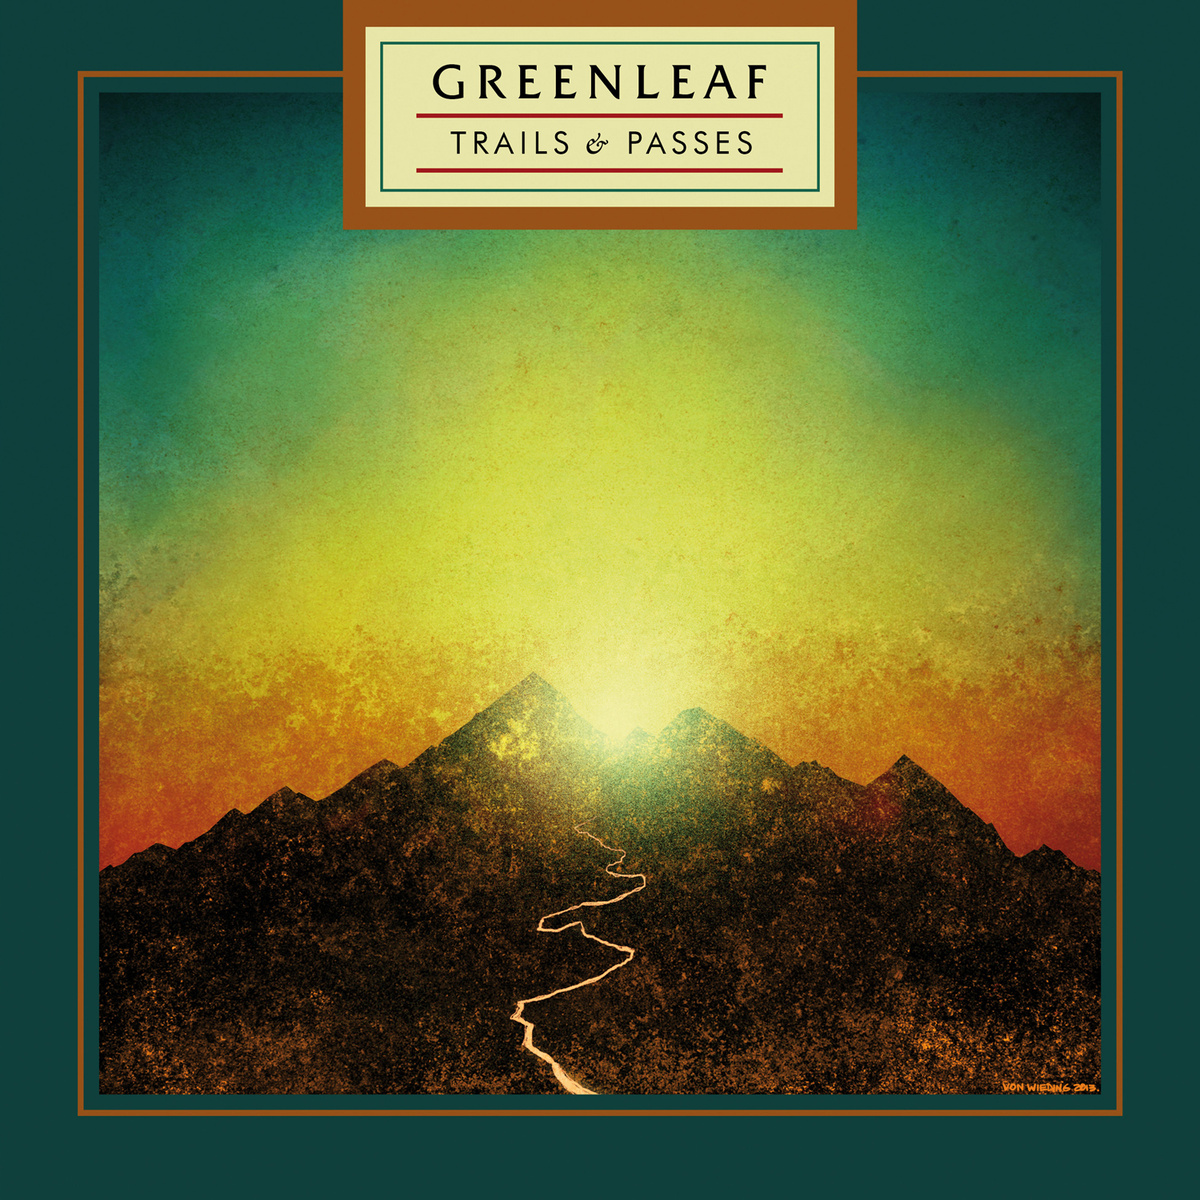 greenleaf-trails-and-passes